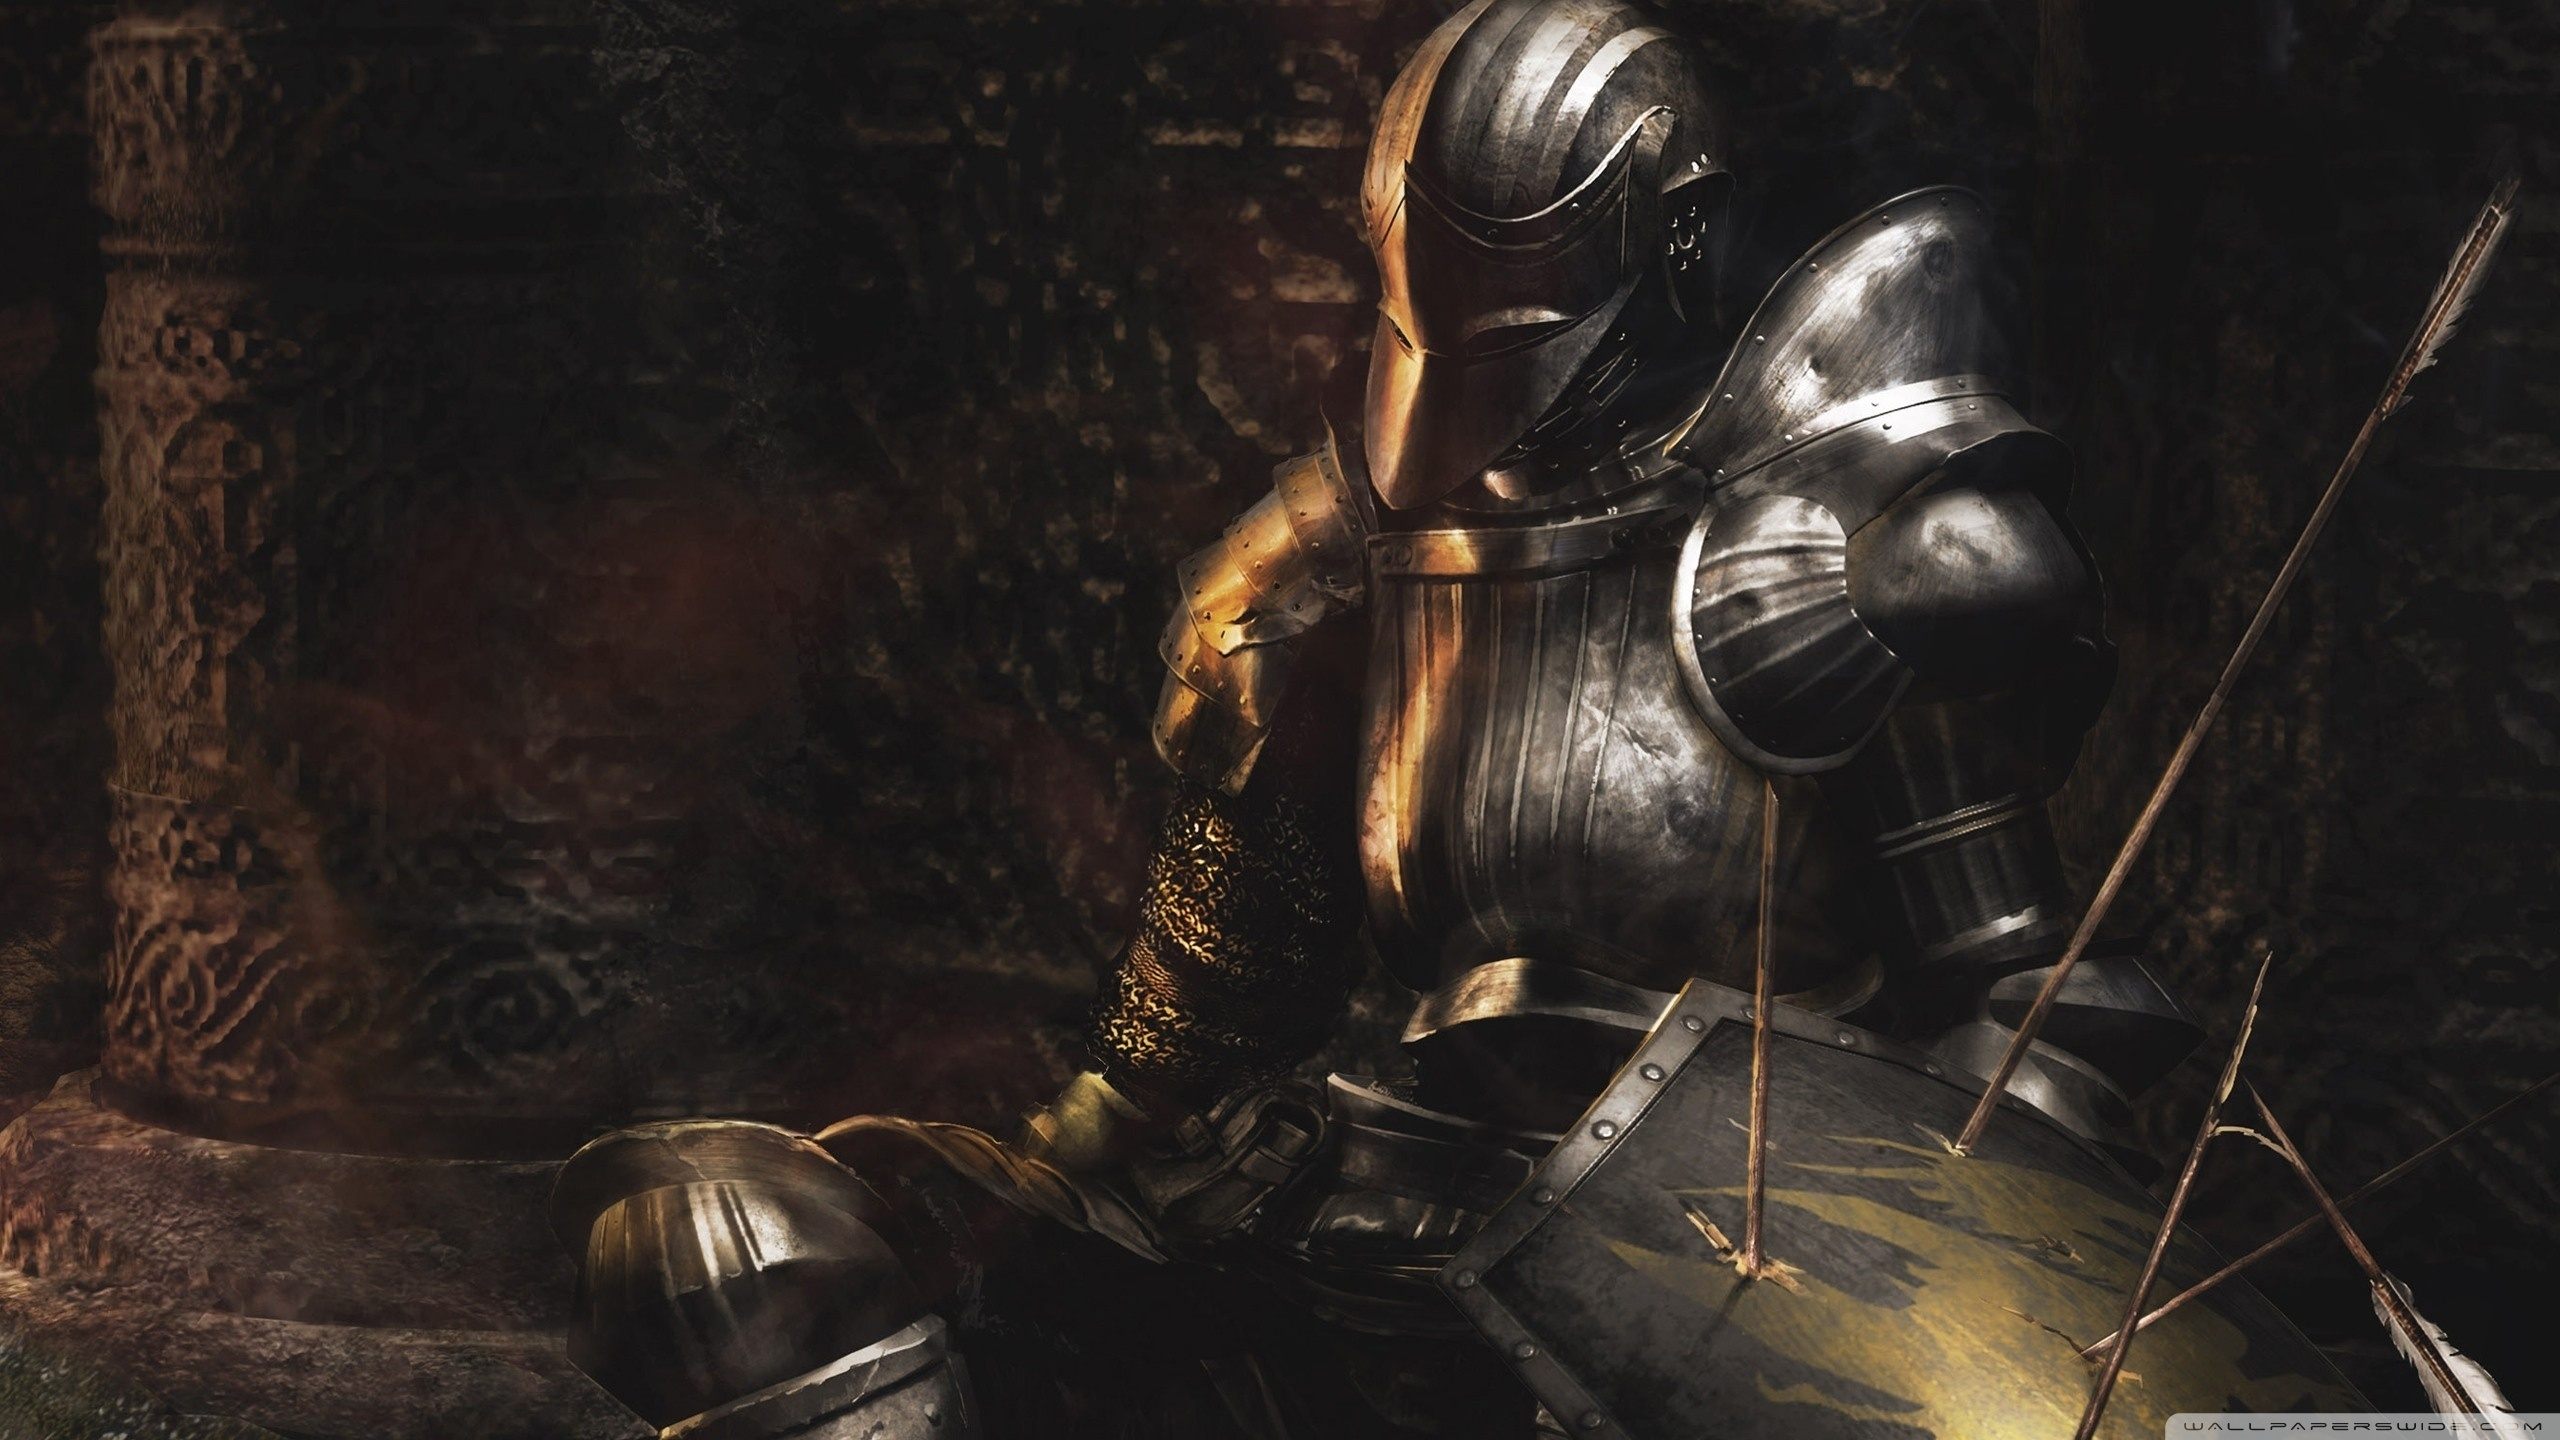 demon's souls ❤ 4k hd desktop wallpaper for 4k ultra hd tv • tablet